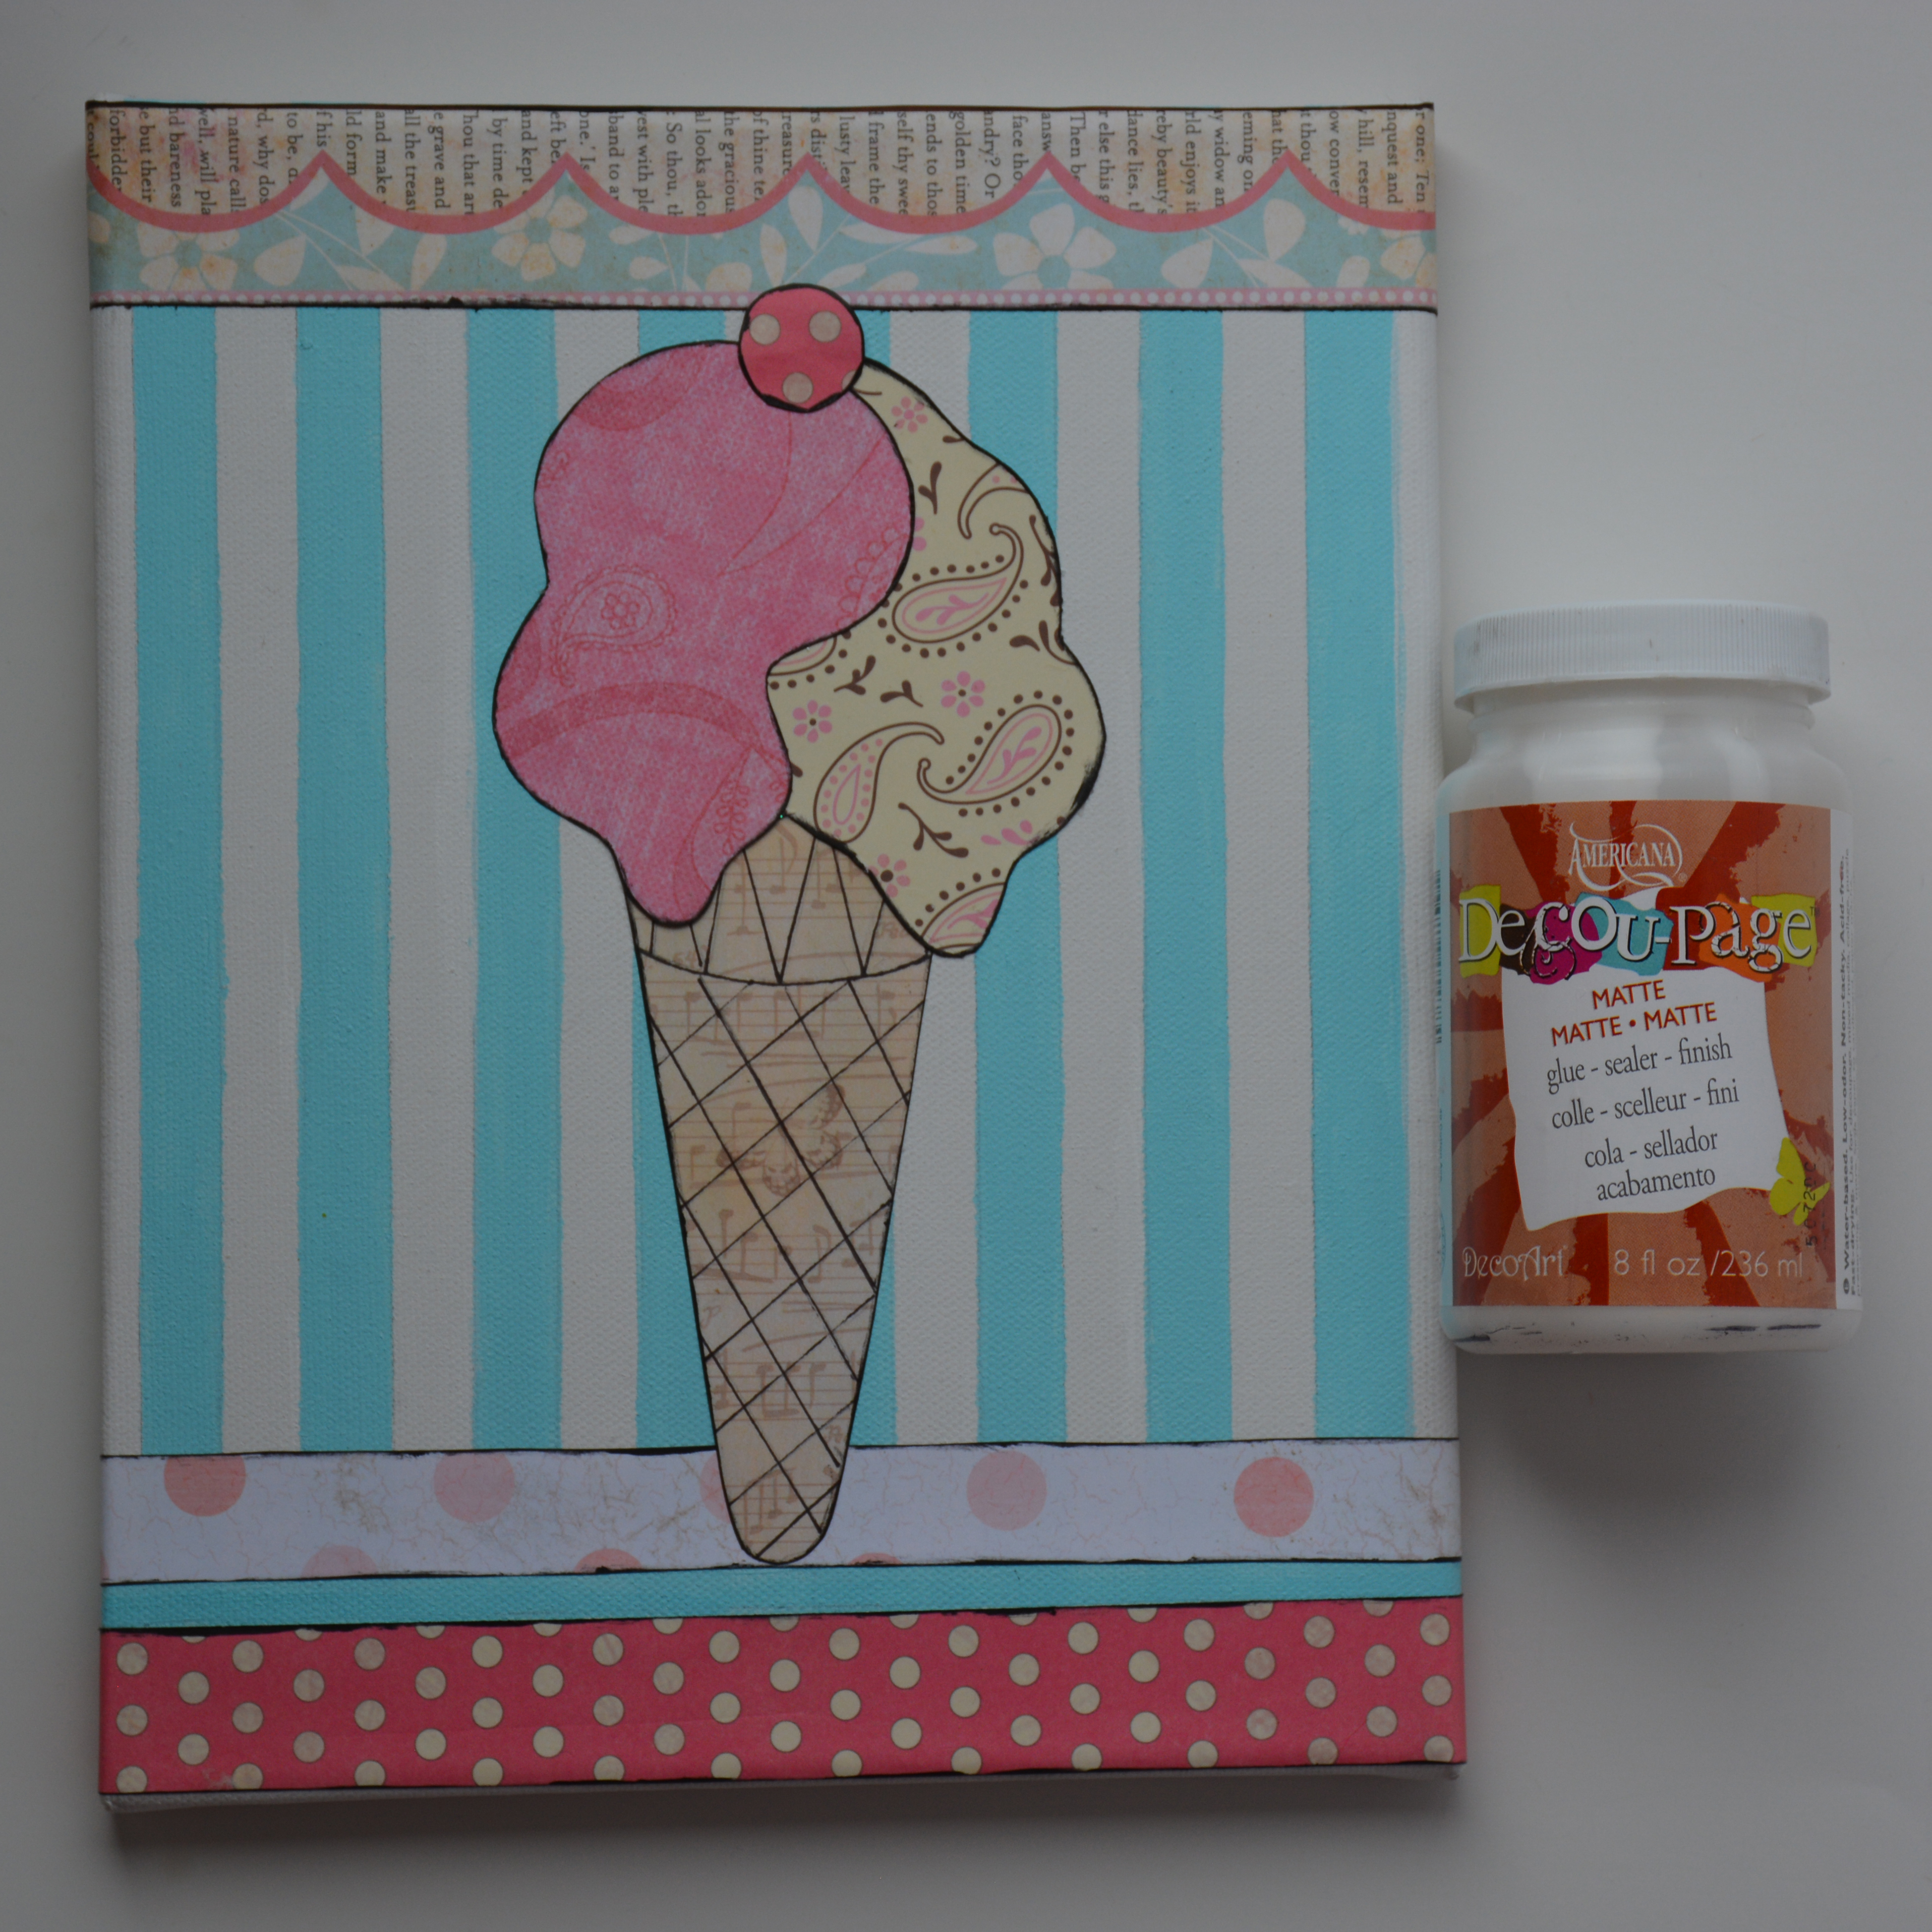 How to scrapbook canvas - Adhere The Strips Of Scrapbook Paper To The Canvas With Matte Decou Page Adhere The Ice Cream Cone Then The Vanilla Ice Cream Then The Pink Ice Cream